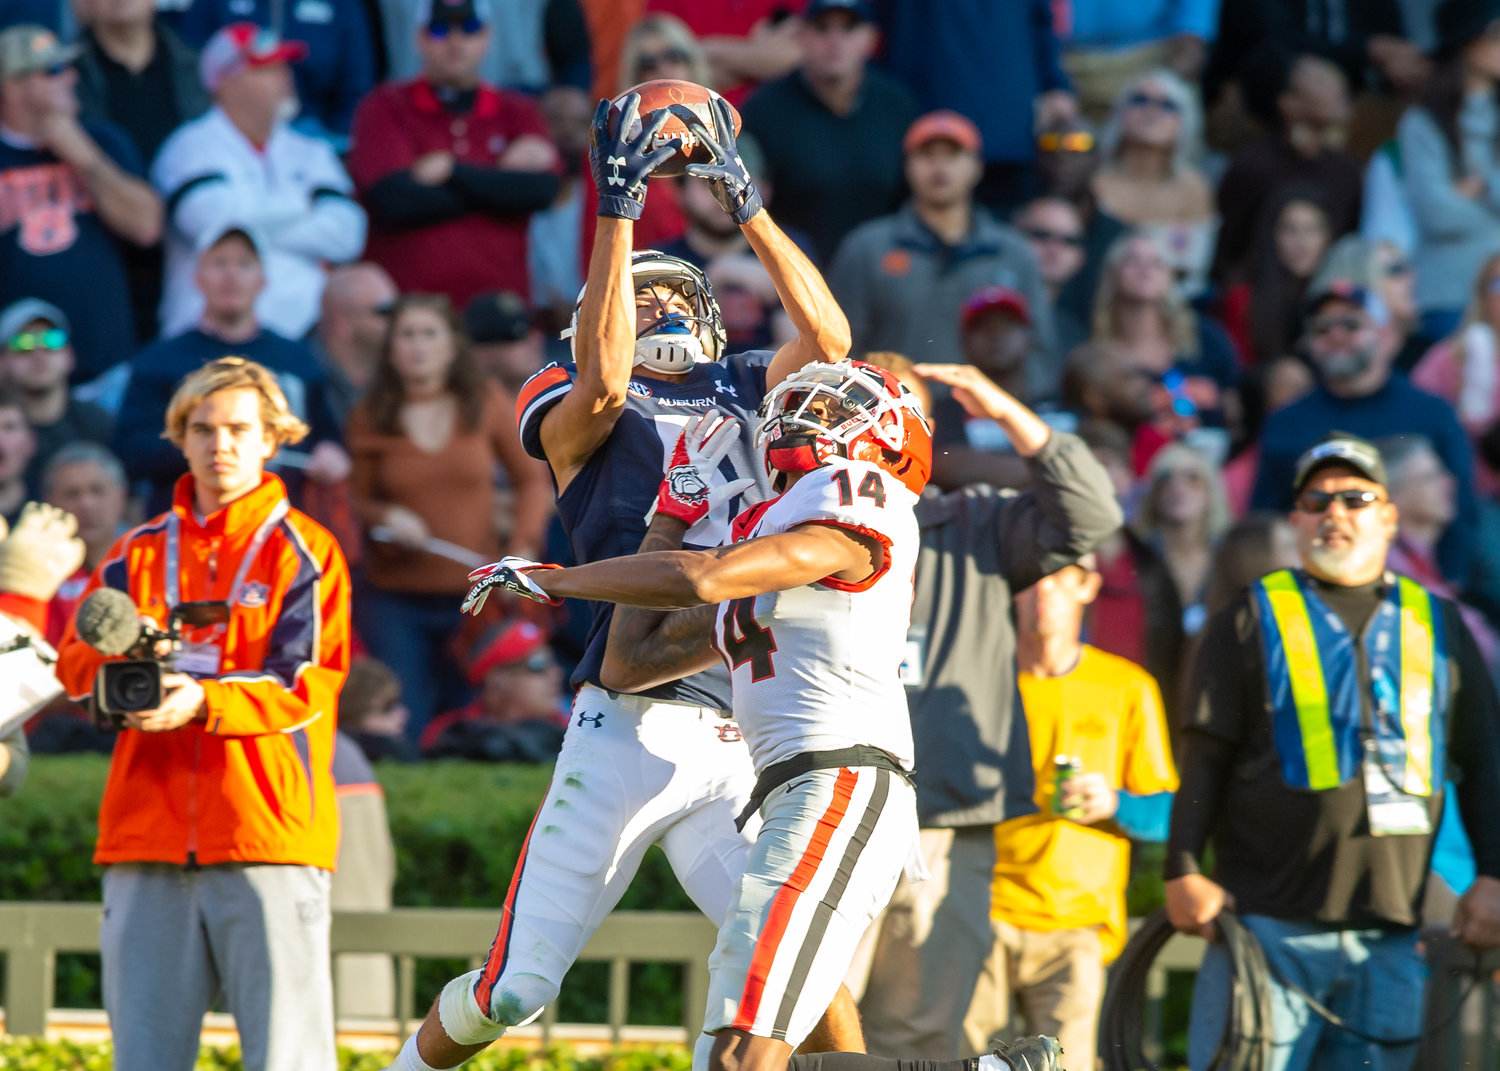 Auburn Tigers wide receiver Anthony Schwartz (5) tries to make a catch over Georgia Bulldogs defensive back DJ Daniel (14) during the first half of Saturday's game, at Jordan-Hare Stadium in Auburn,, AL. Daily Mountain Eagle -  Jeff Johnsey